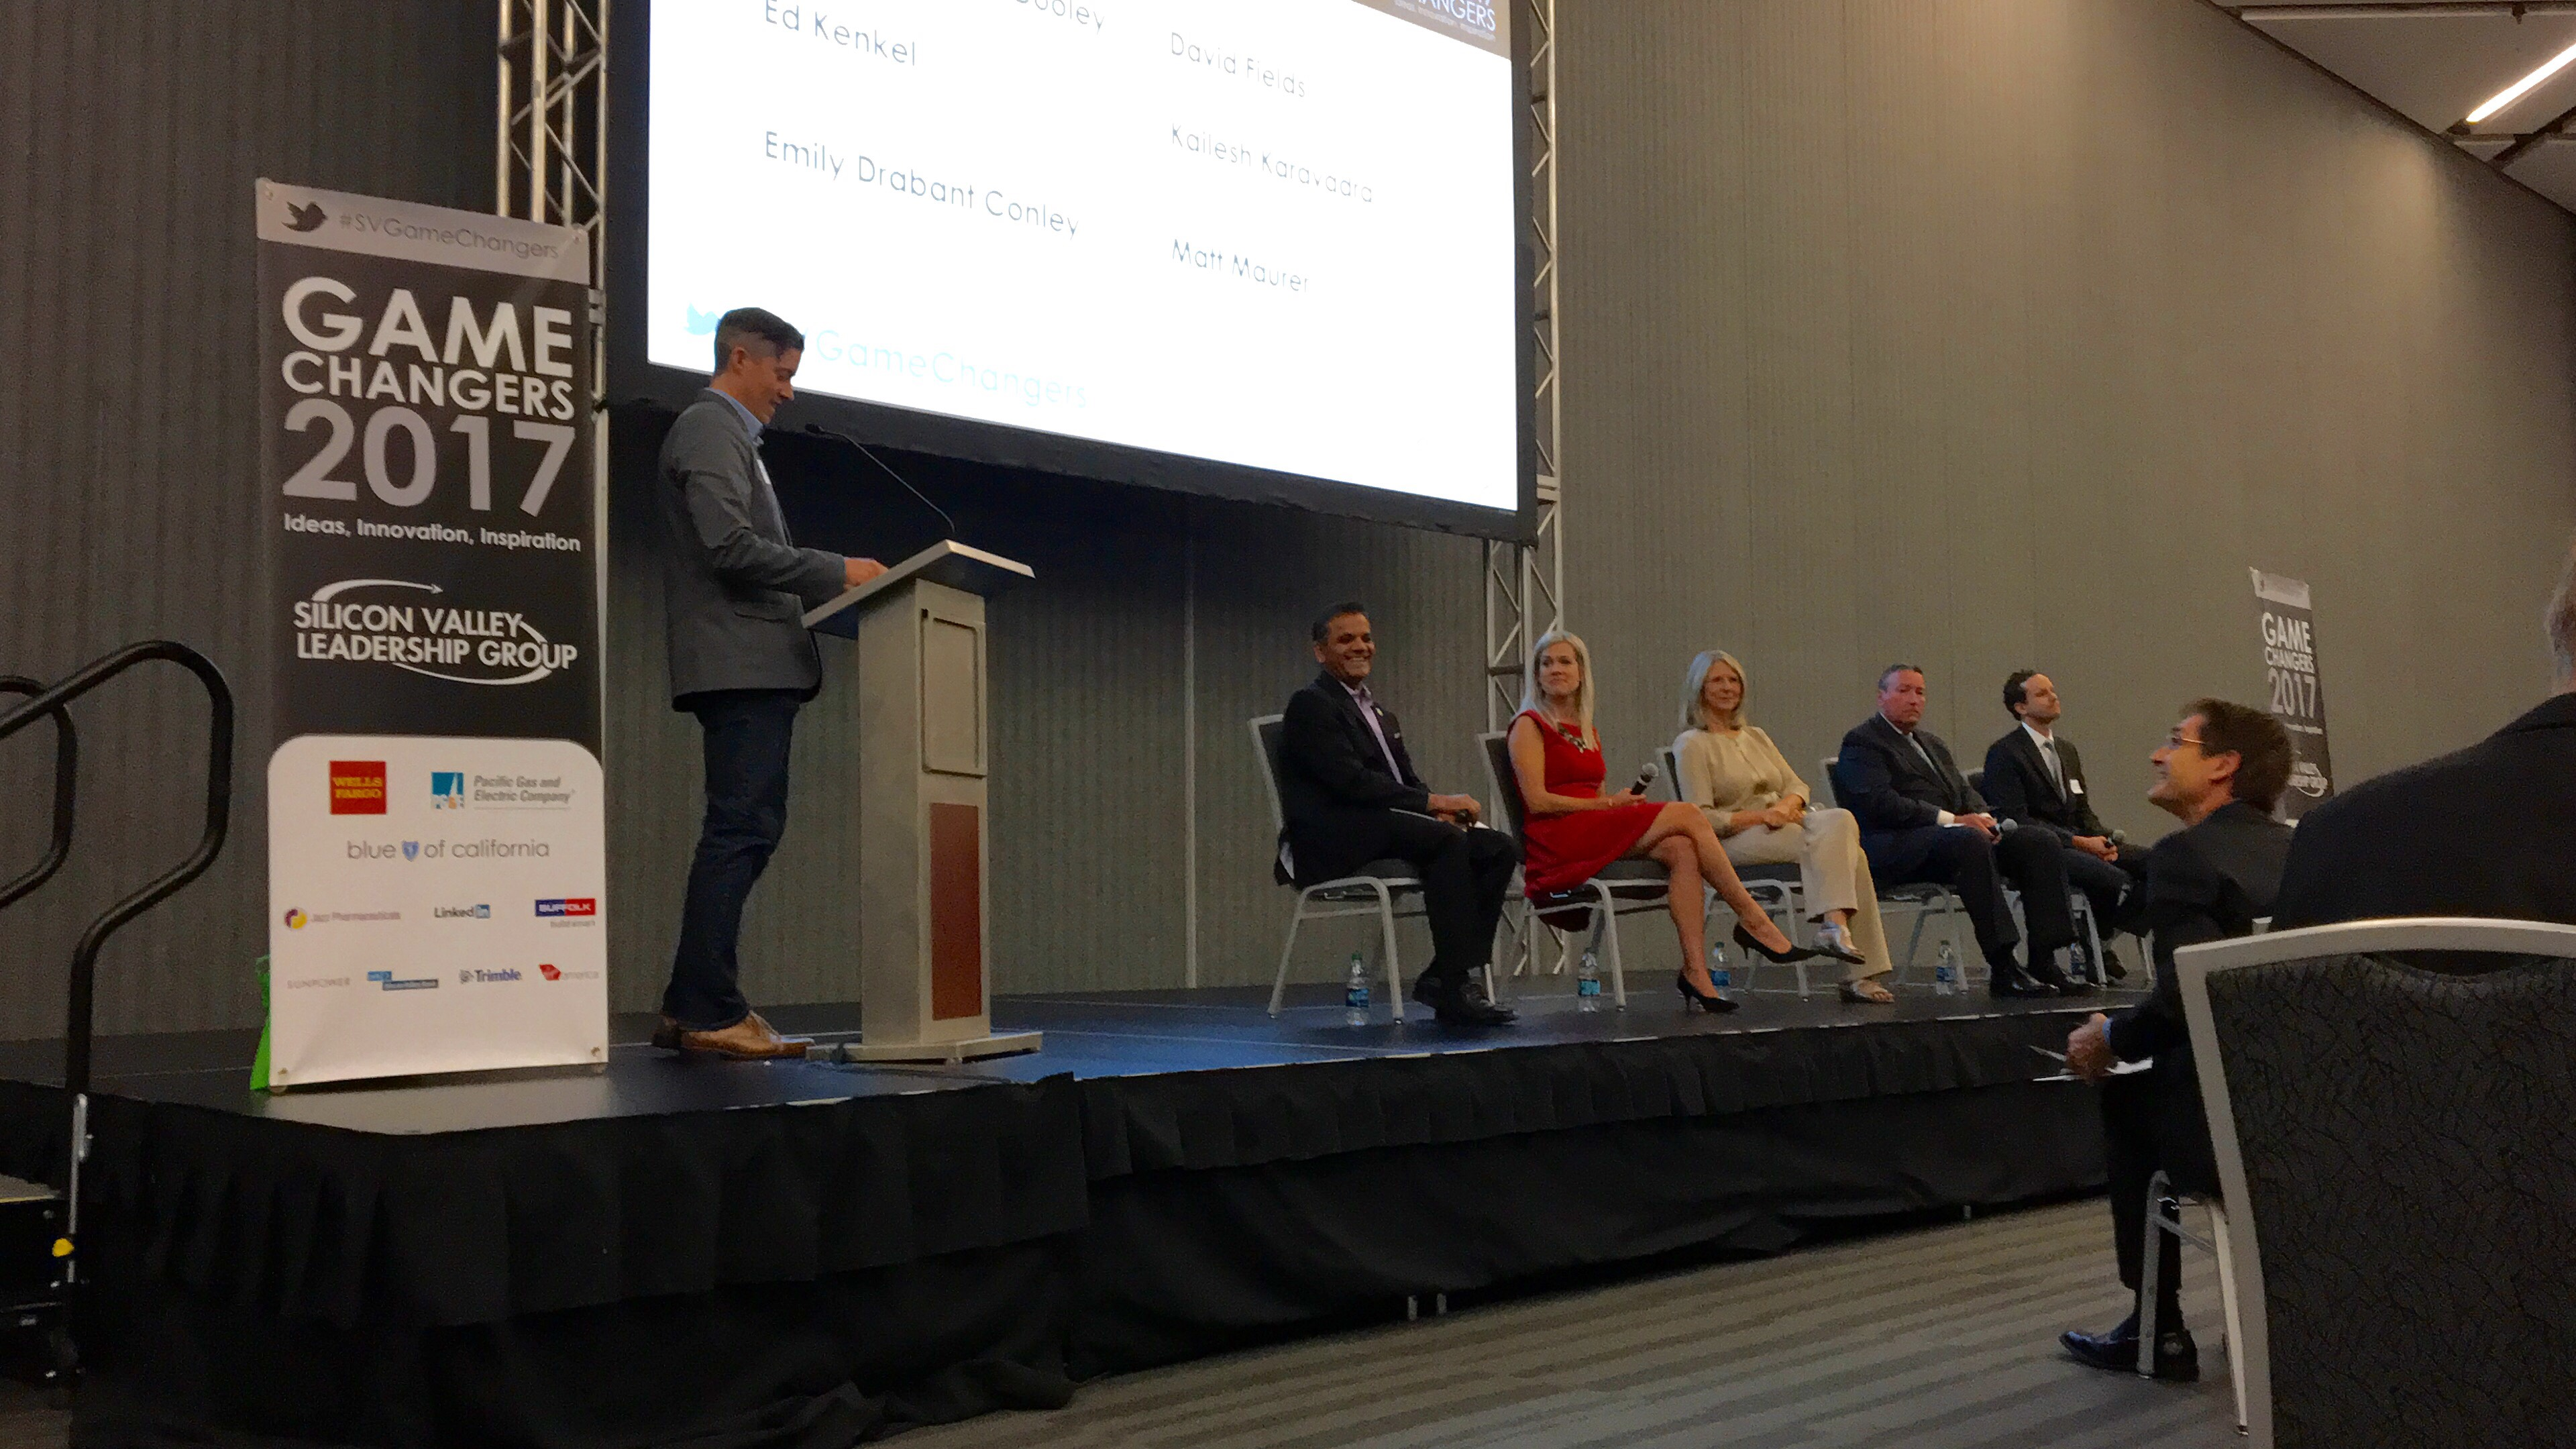 Stroll Invited to Run 'Game Changers' Healthcare Innovations Panel